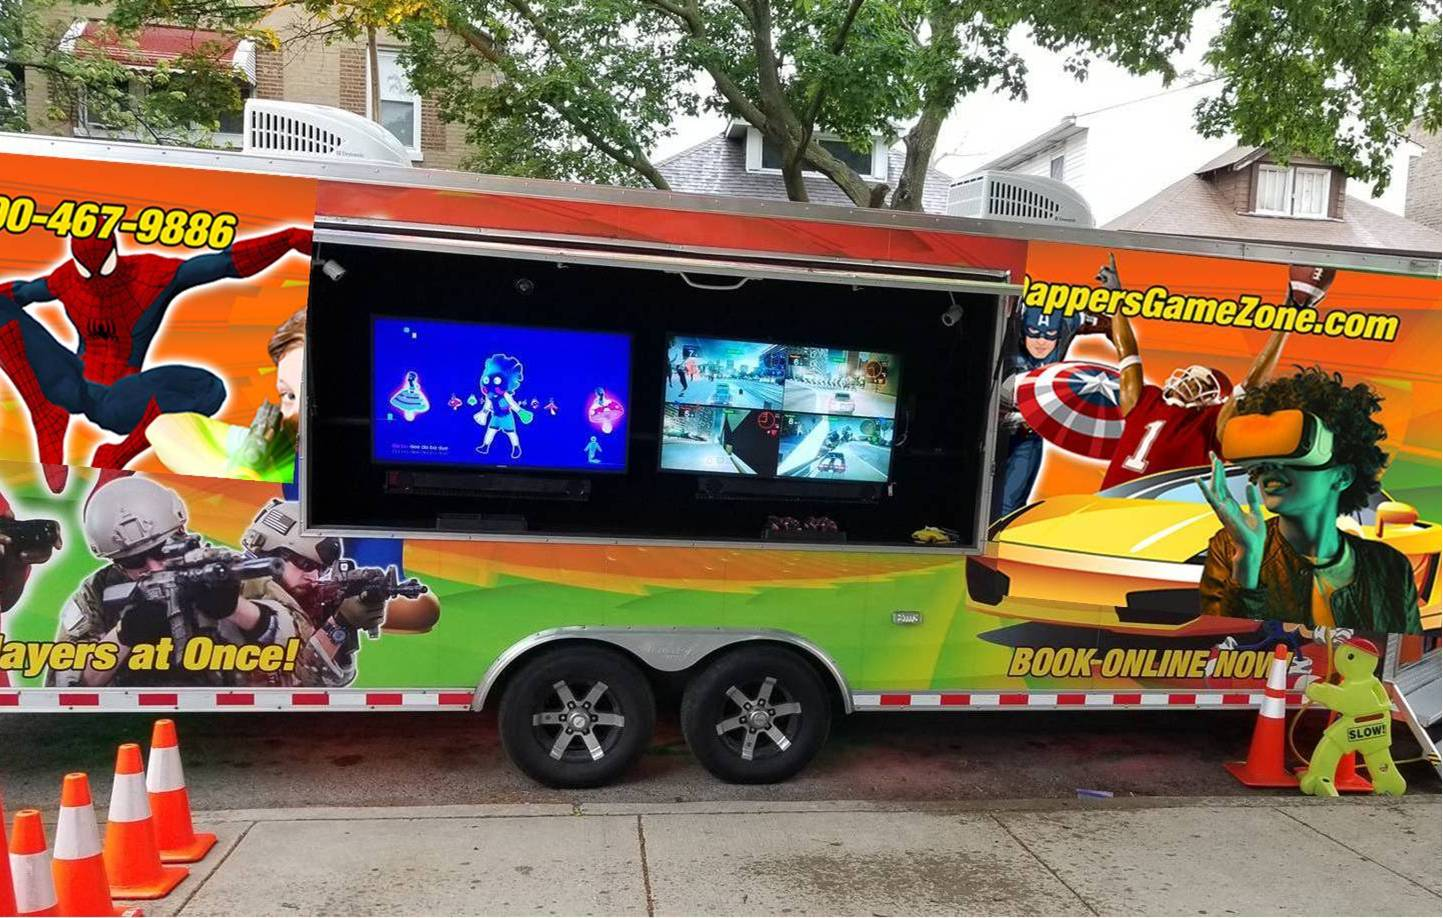 Video game truck party in Chicago - Dappers Game Zone